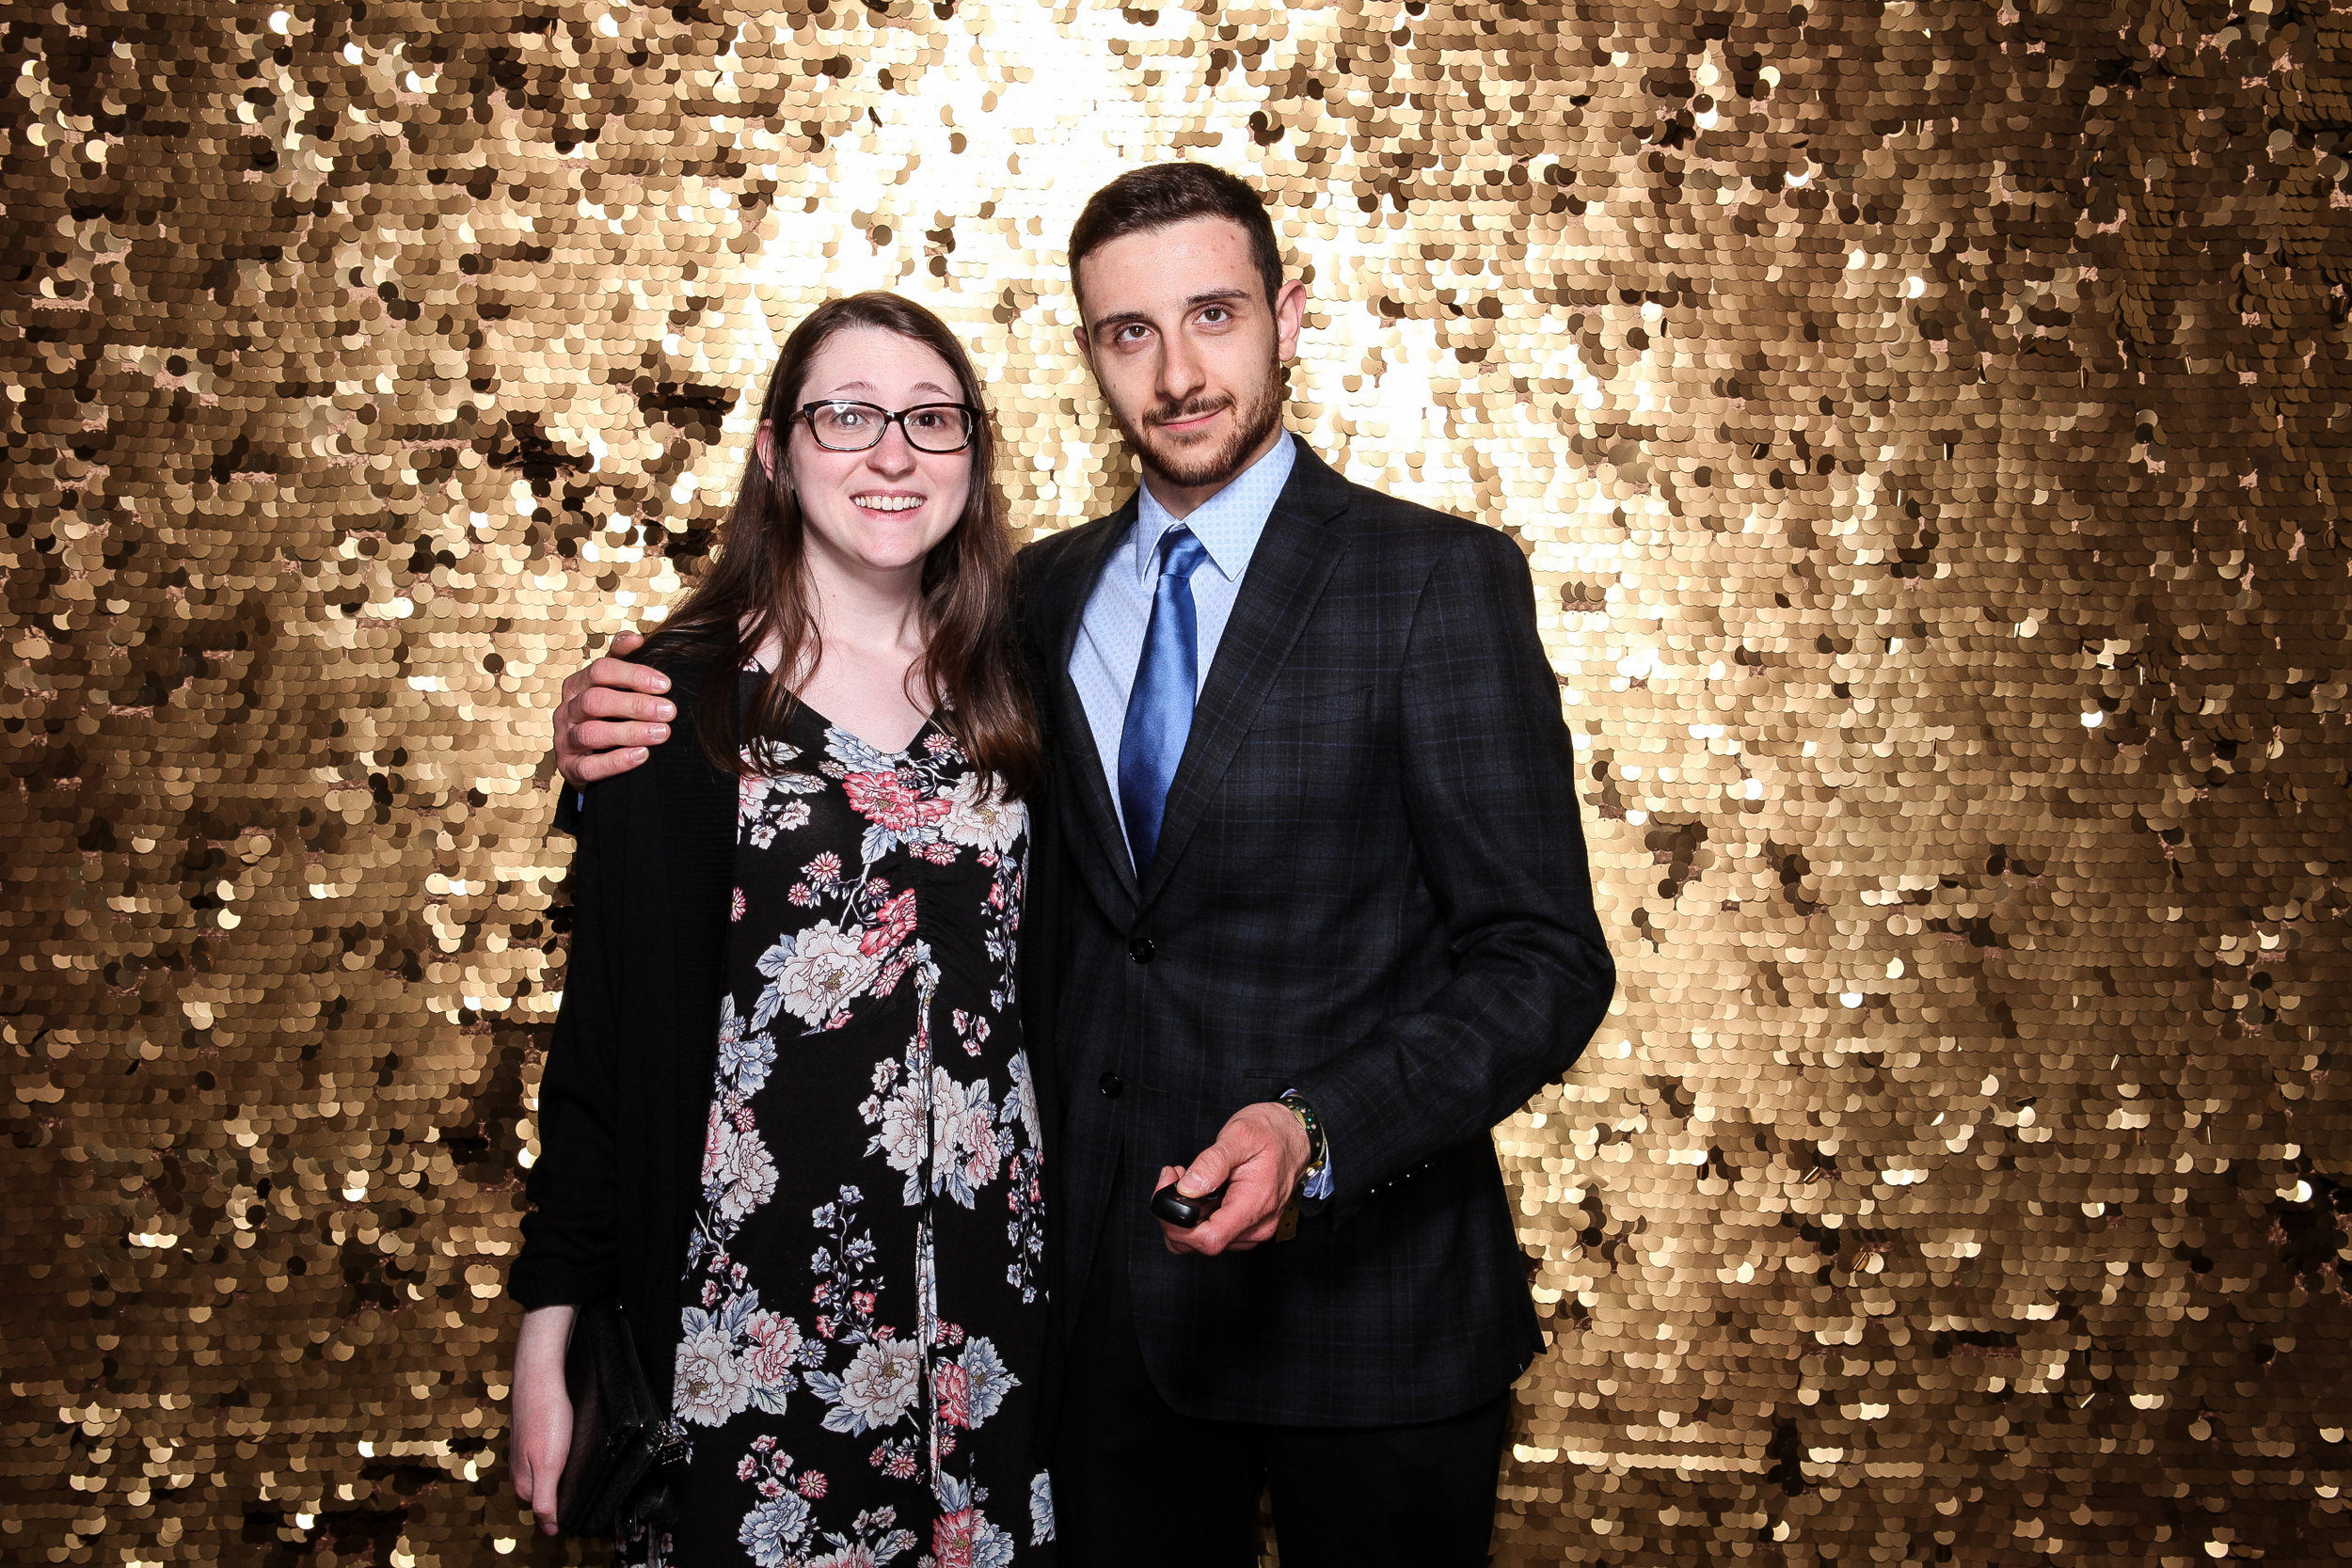 20190503_Adelphi_Senior_Formal-202.jpg